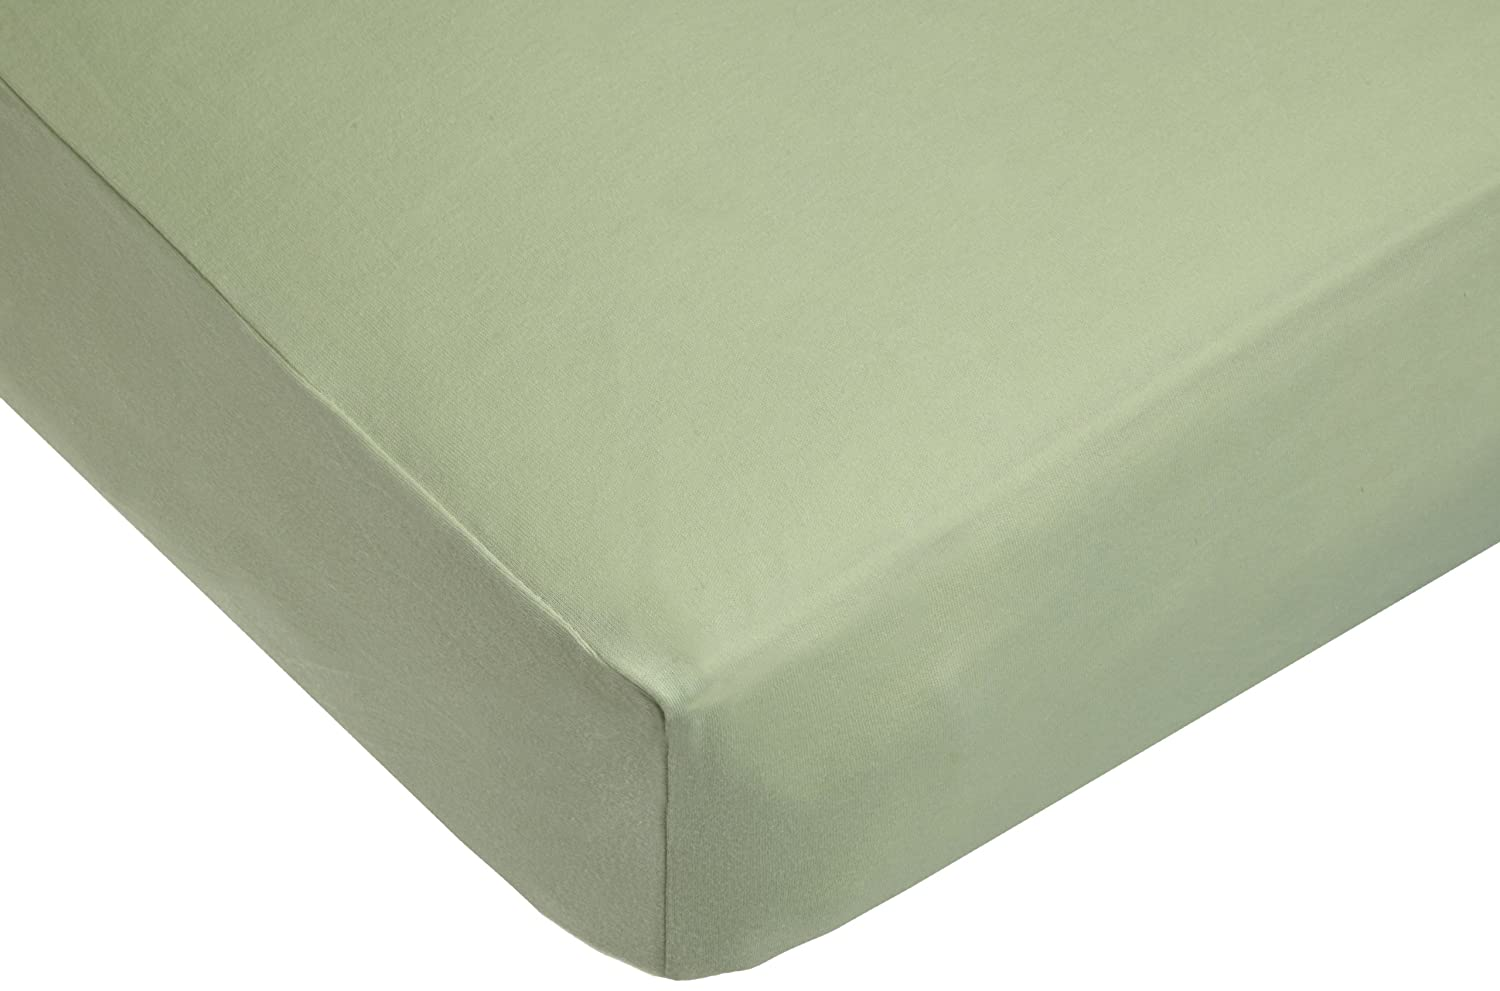 American Baby Company Knit Fitted Crib Sheet Made with Organic Cotton in Sage Color, Soft Breathable, for Boys and Girls